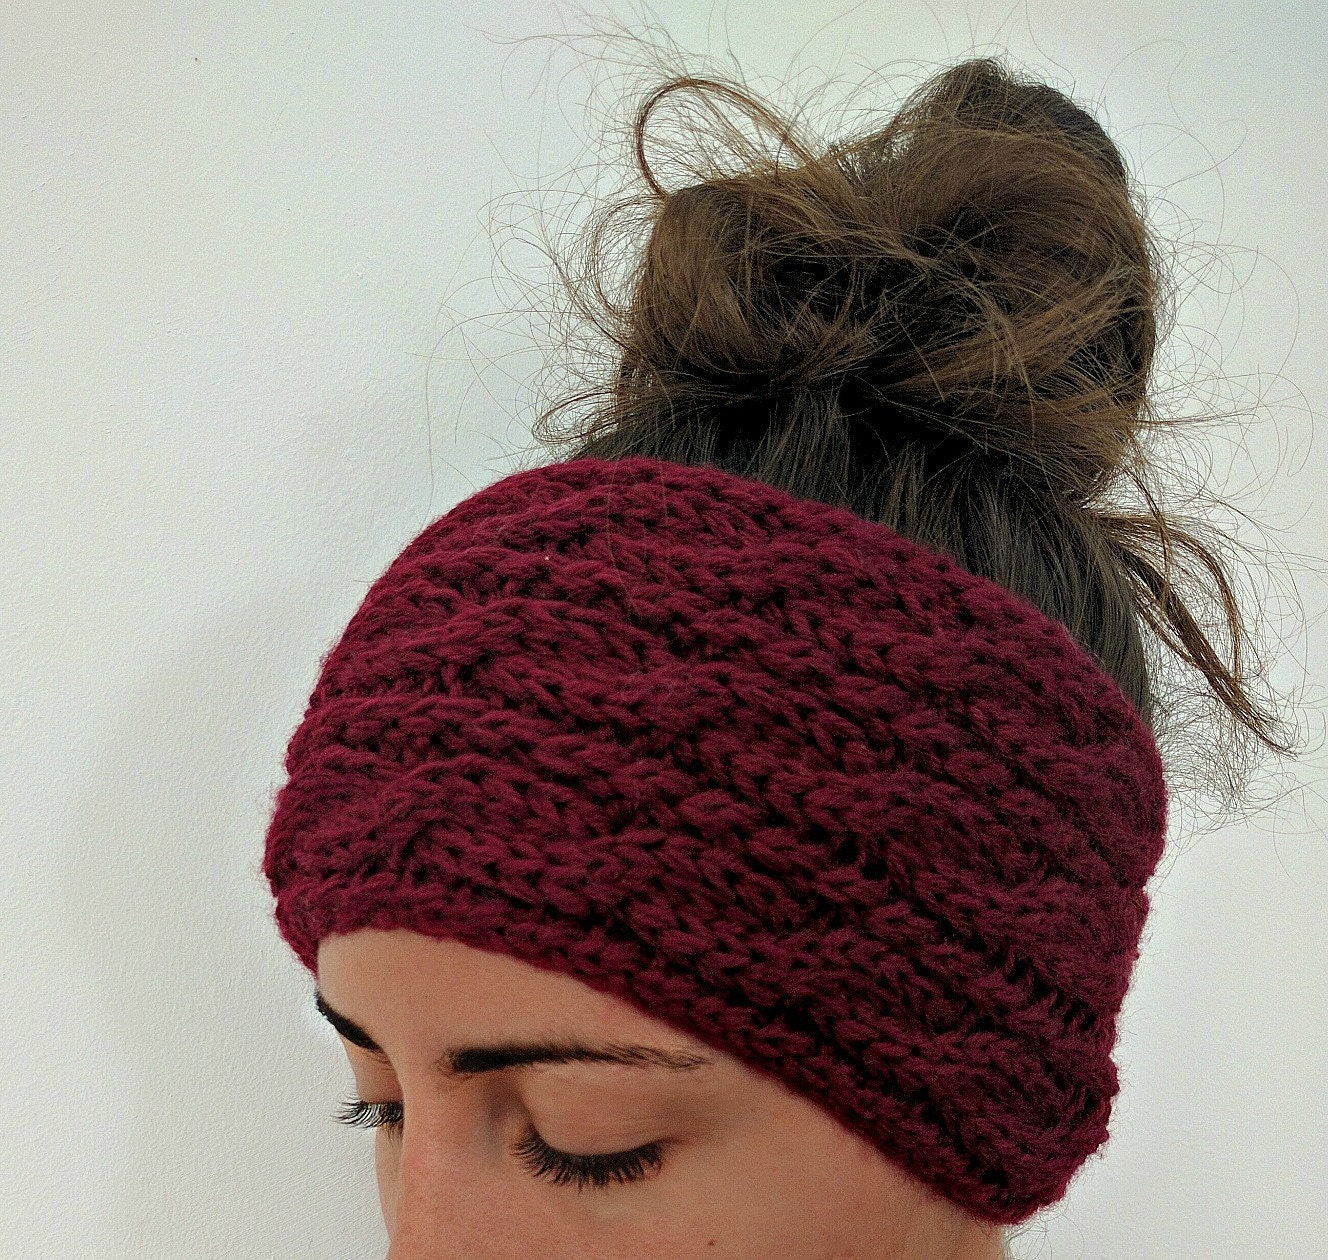 Chunky Cable Knit Ear Warmer Pattern, Knitting Patterns for Women ...